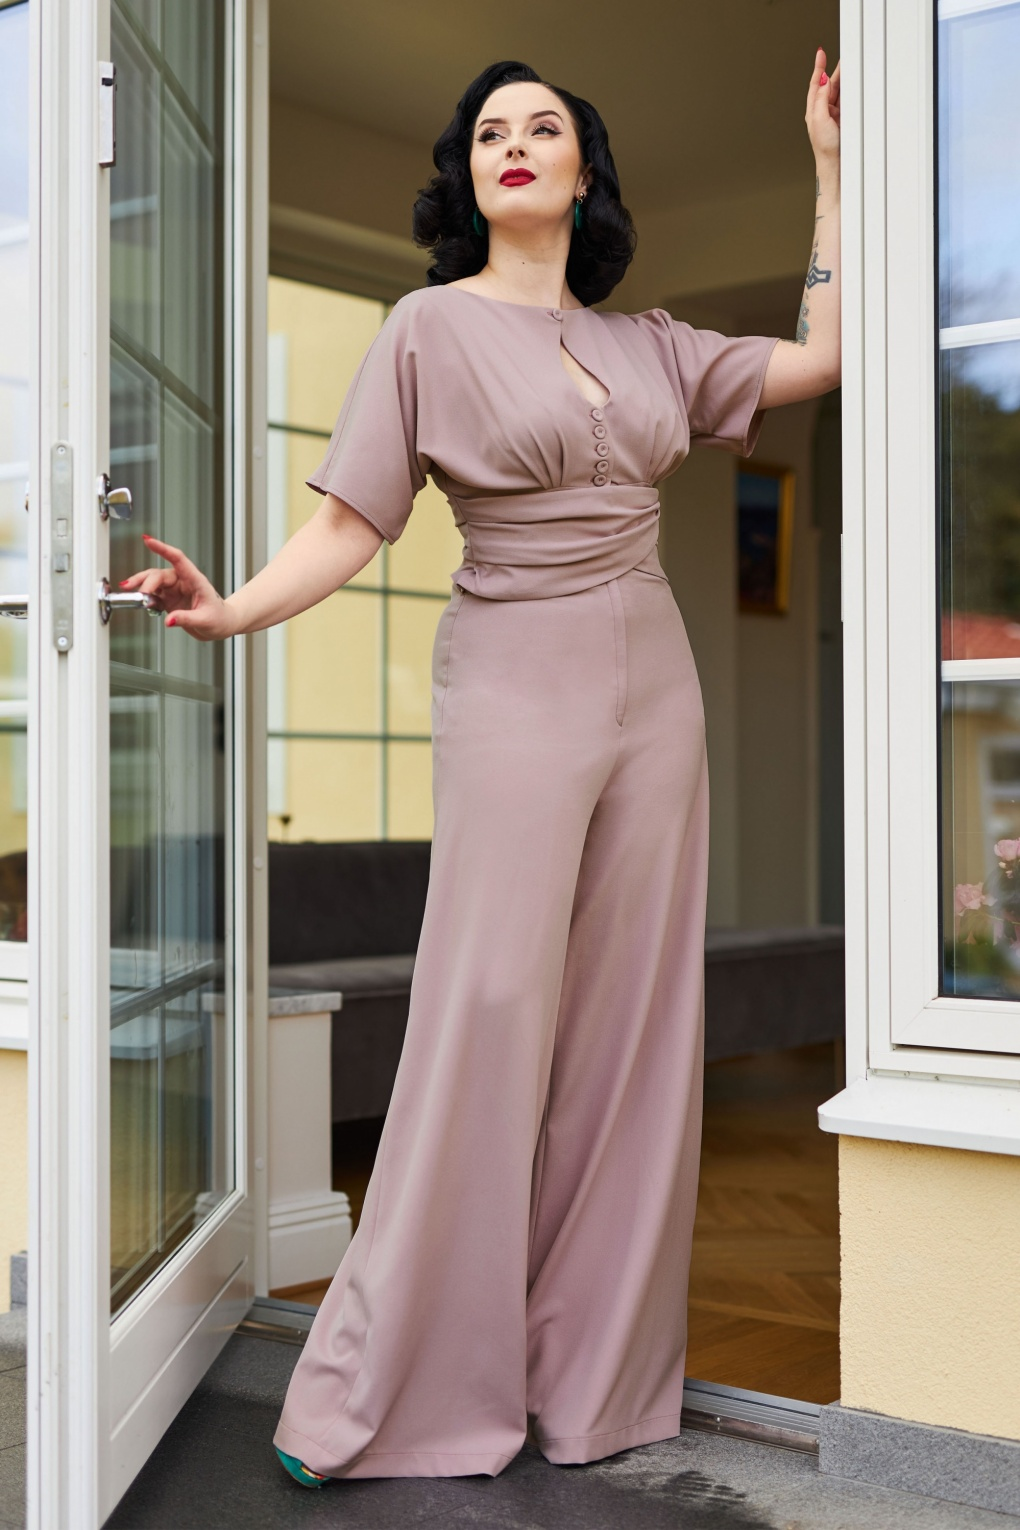 Vintage Overalls 1910s -1950s History & Shop Overalls 50s Narin Helio Jumpsuit in Mauve £117.88 AT vintagedancer.com